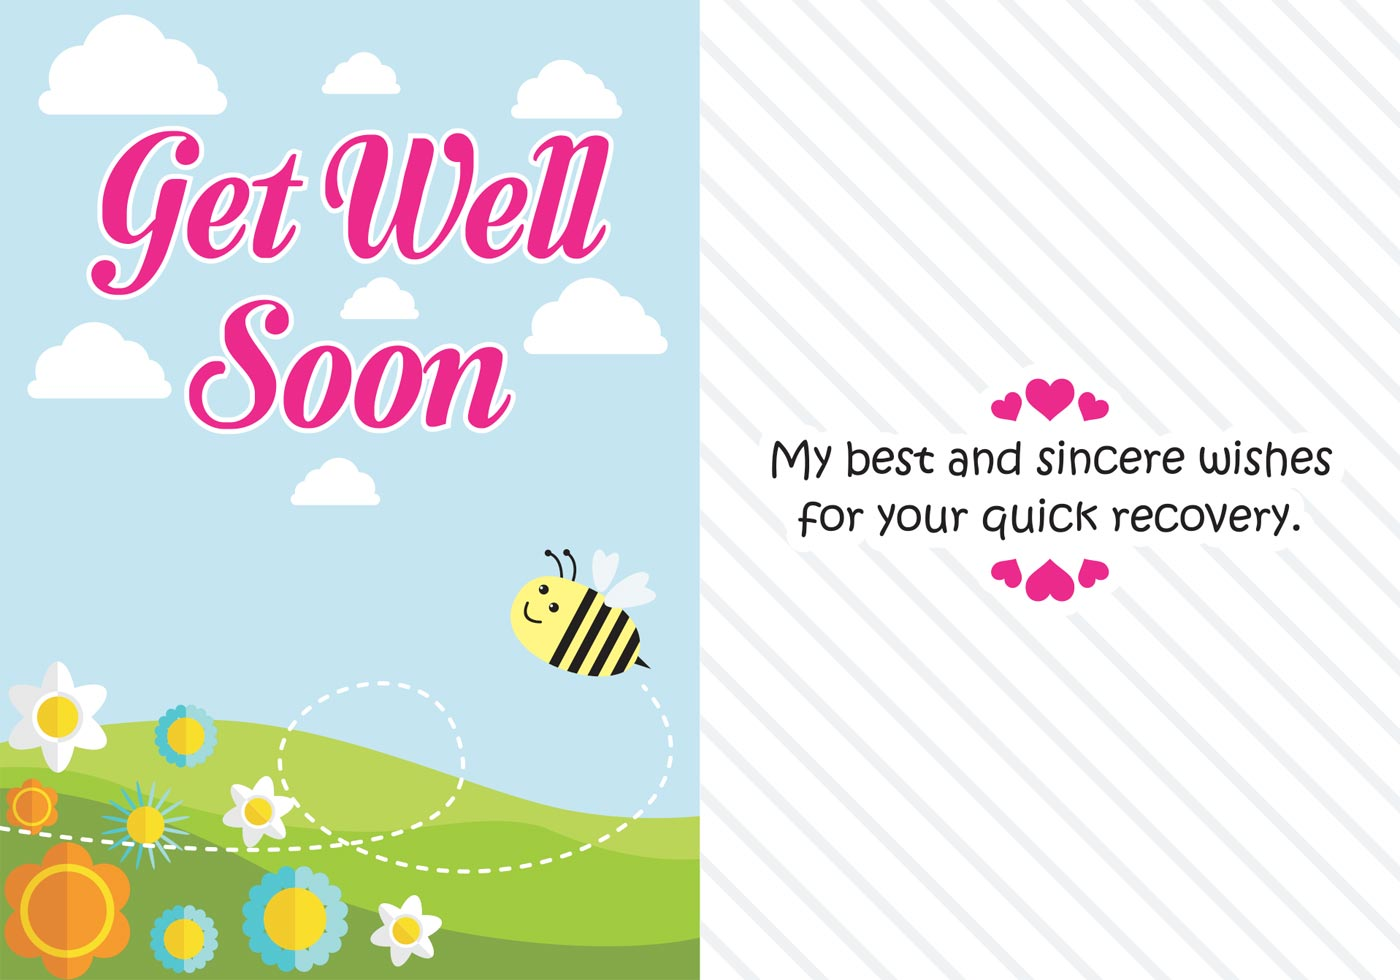 get well soon cards free vector art 28385 free downloads